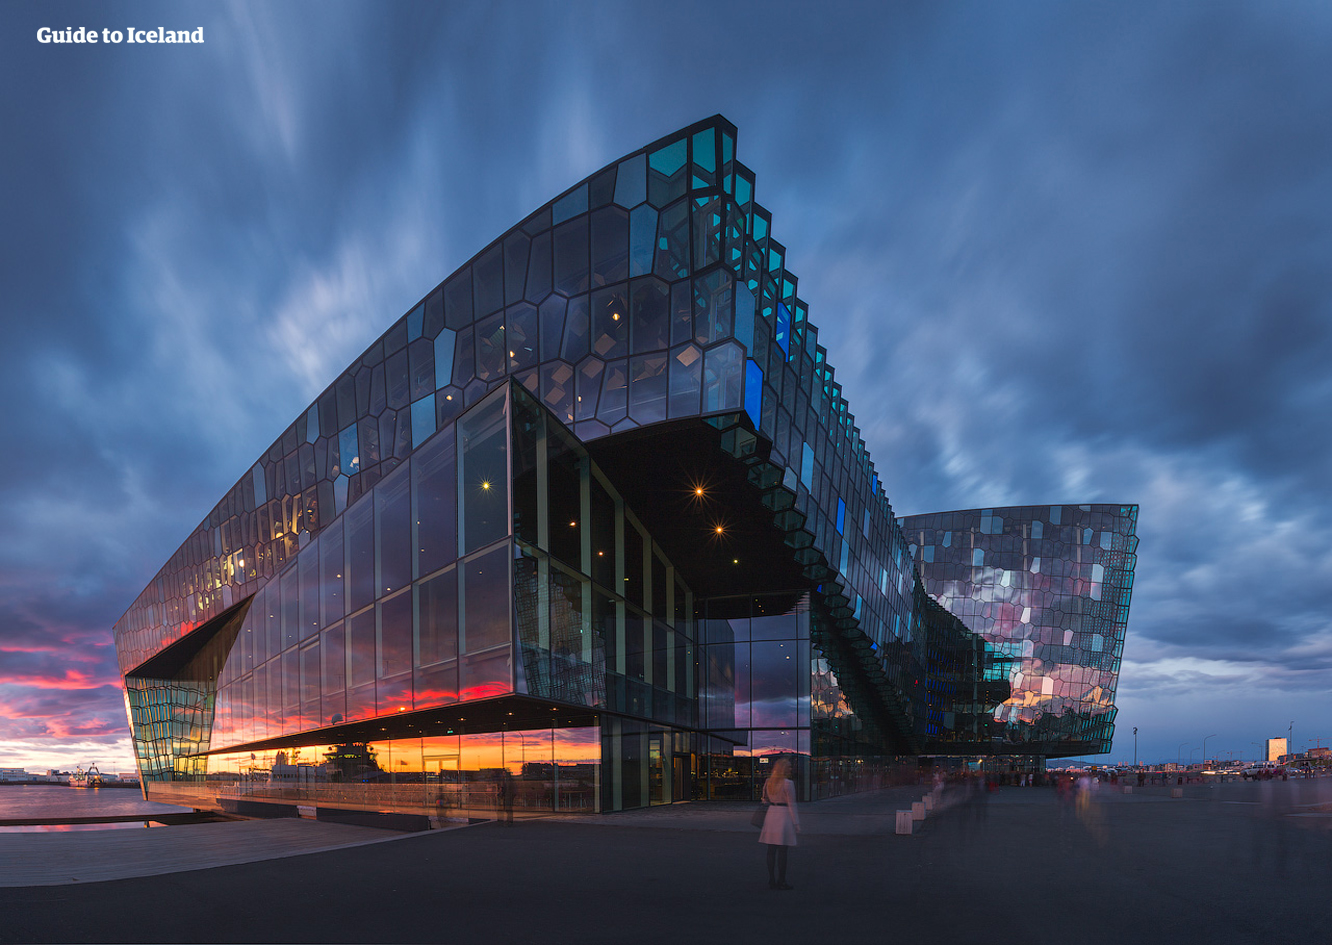 Harpa is a concert hall and conference centre located on the coast of Reykjavik.